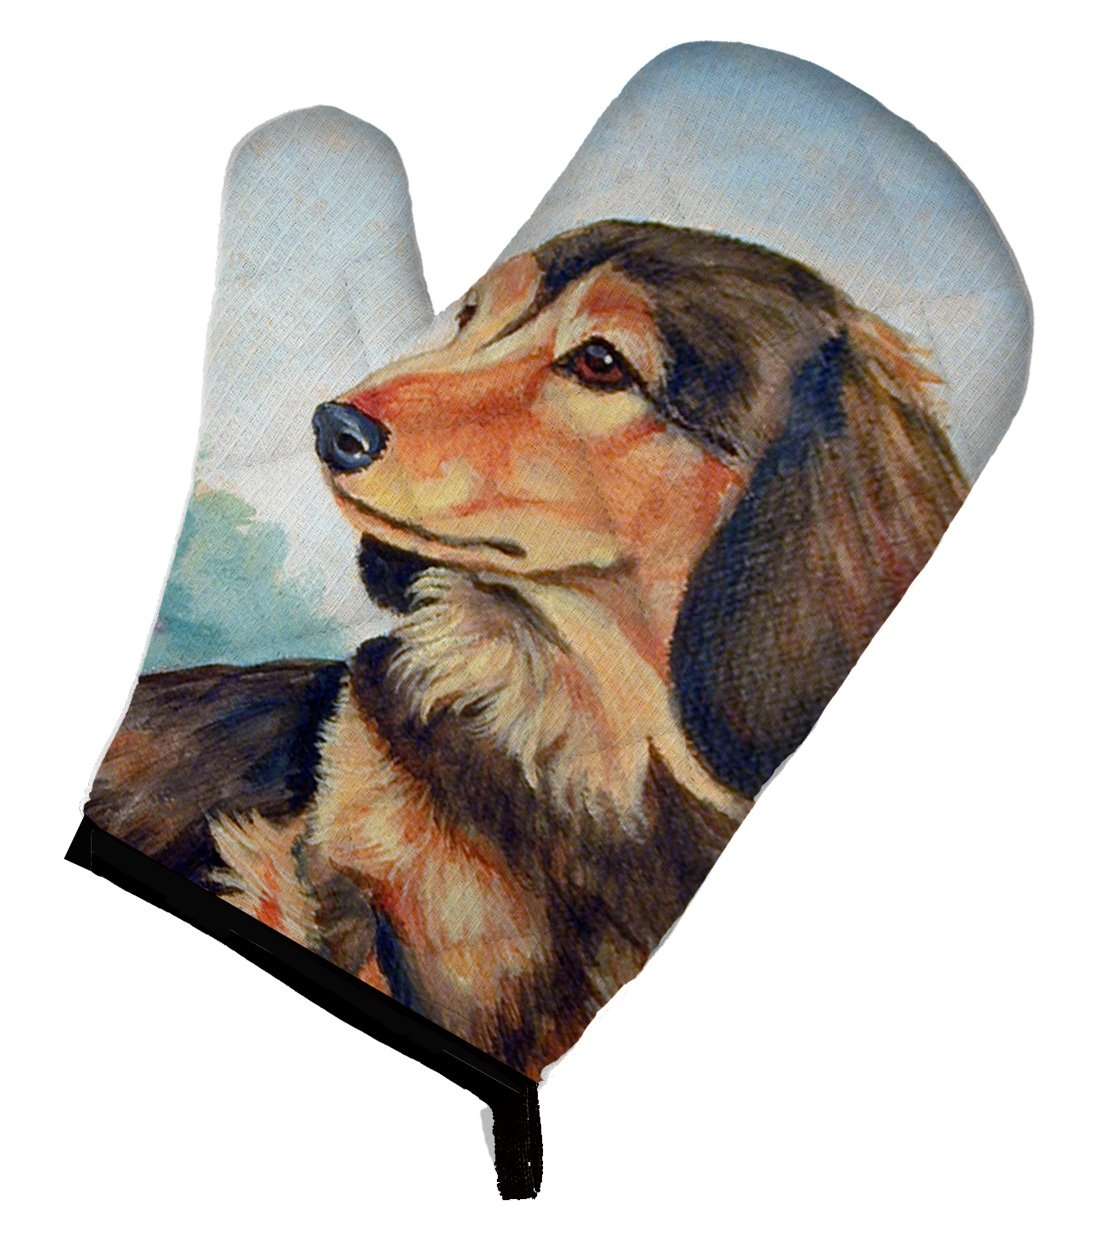 Caroline's Treasures 7023OVMT Long Hair Chocolate and Cream Dachshund Oven Mitt, Large, multicolor